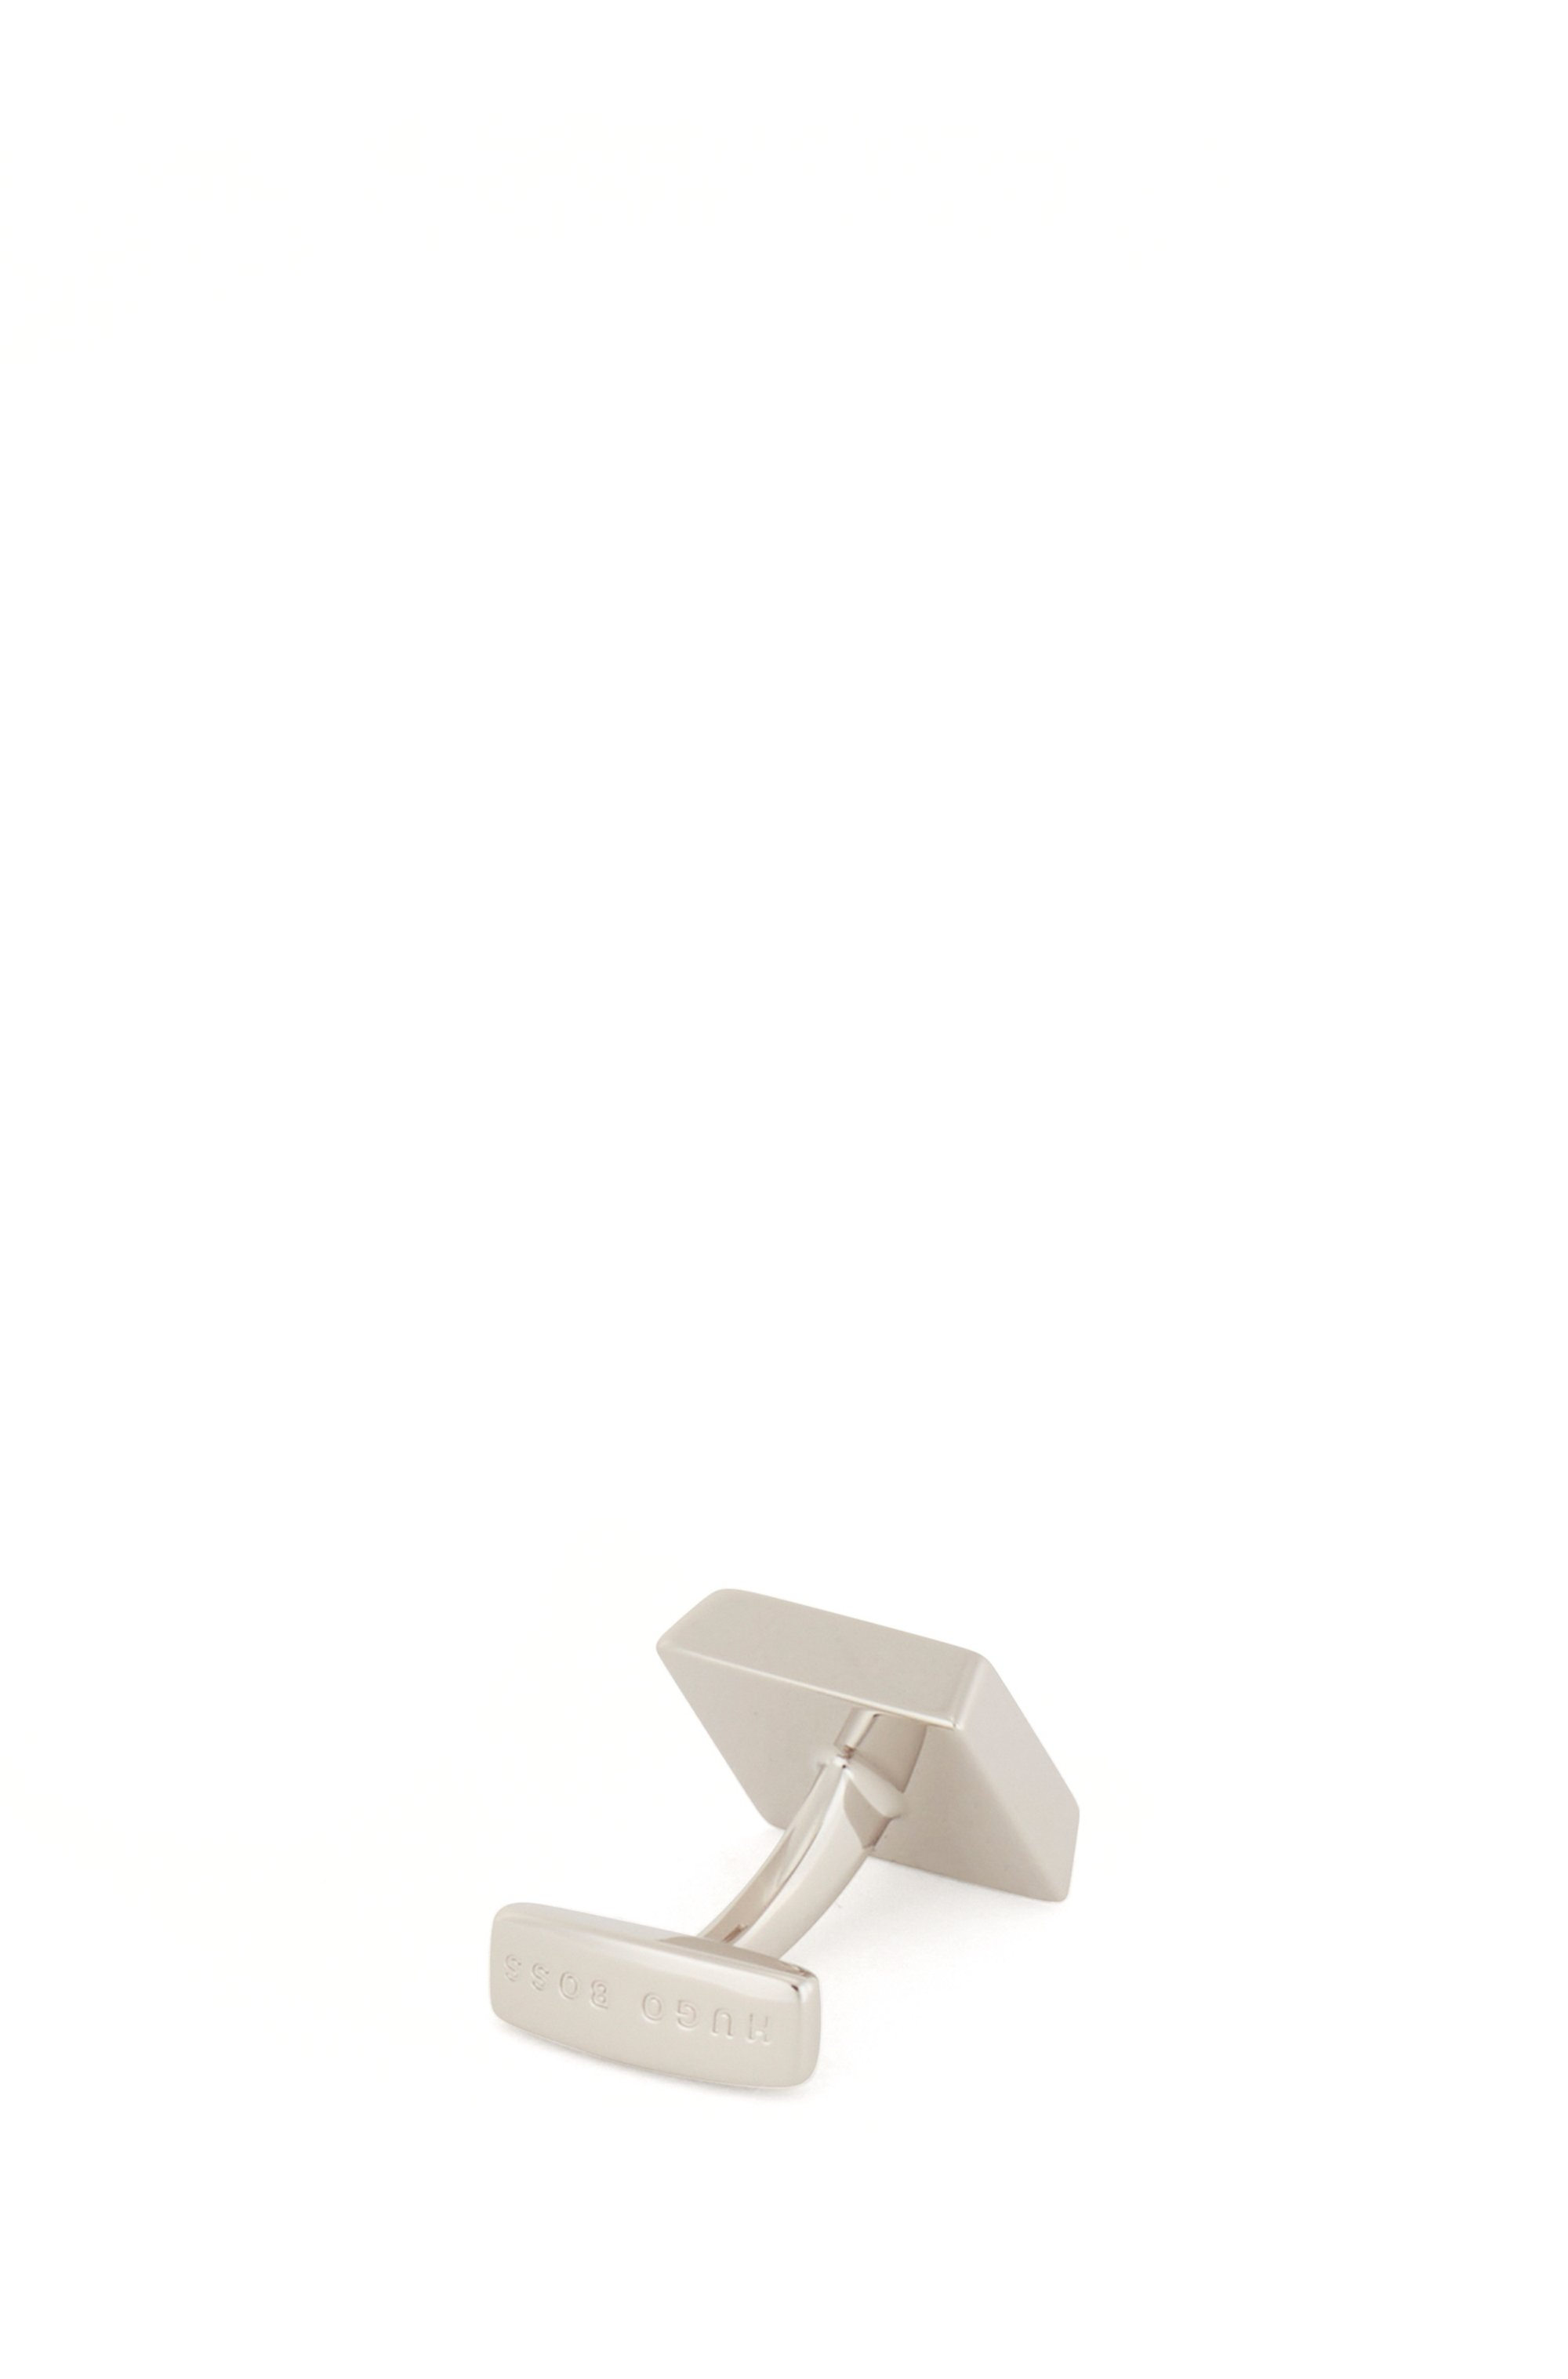 Square cufflinks with enamel insert and engraved logo